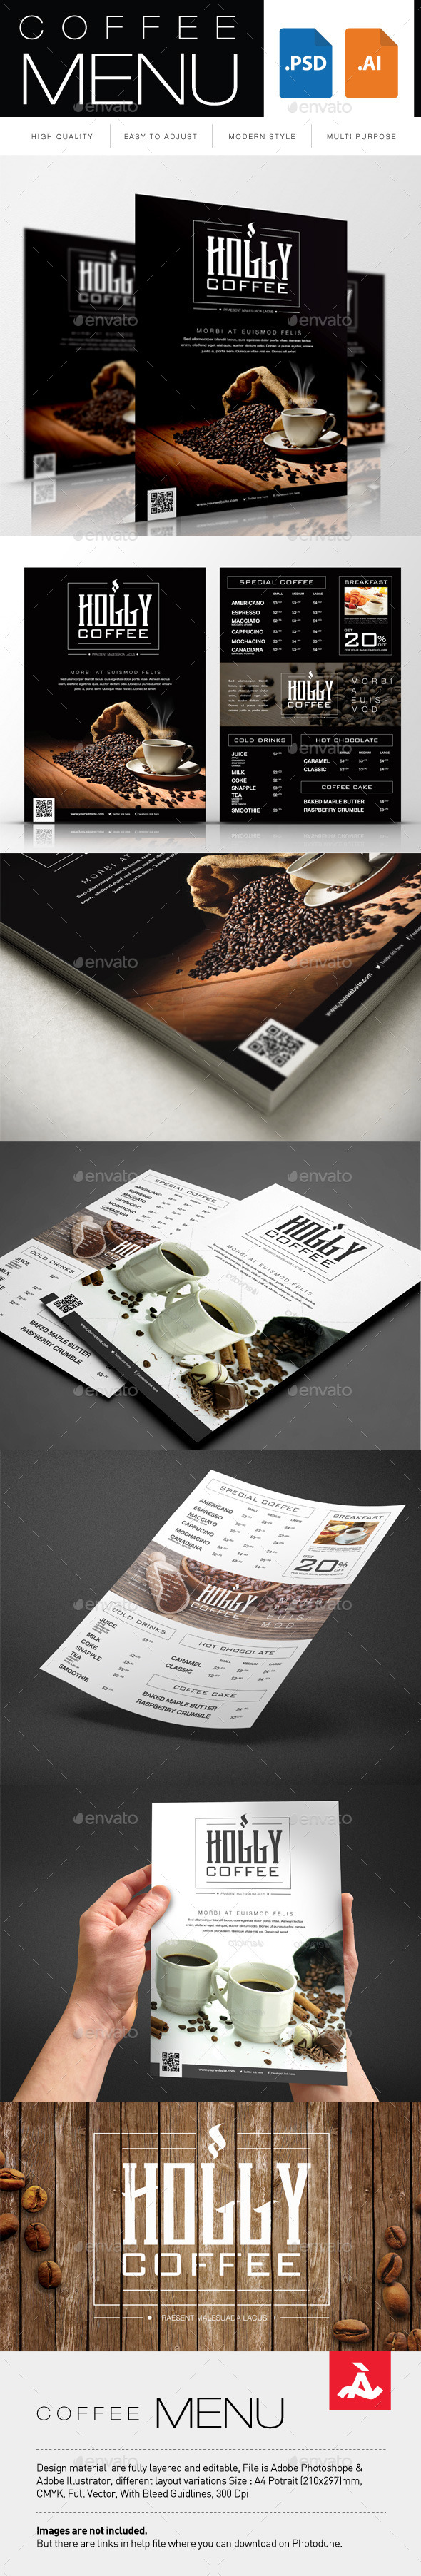 Coffee Menu Restaurant Flyers - Flyers Print Templates